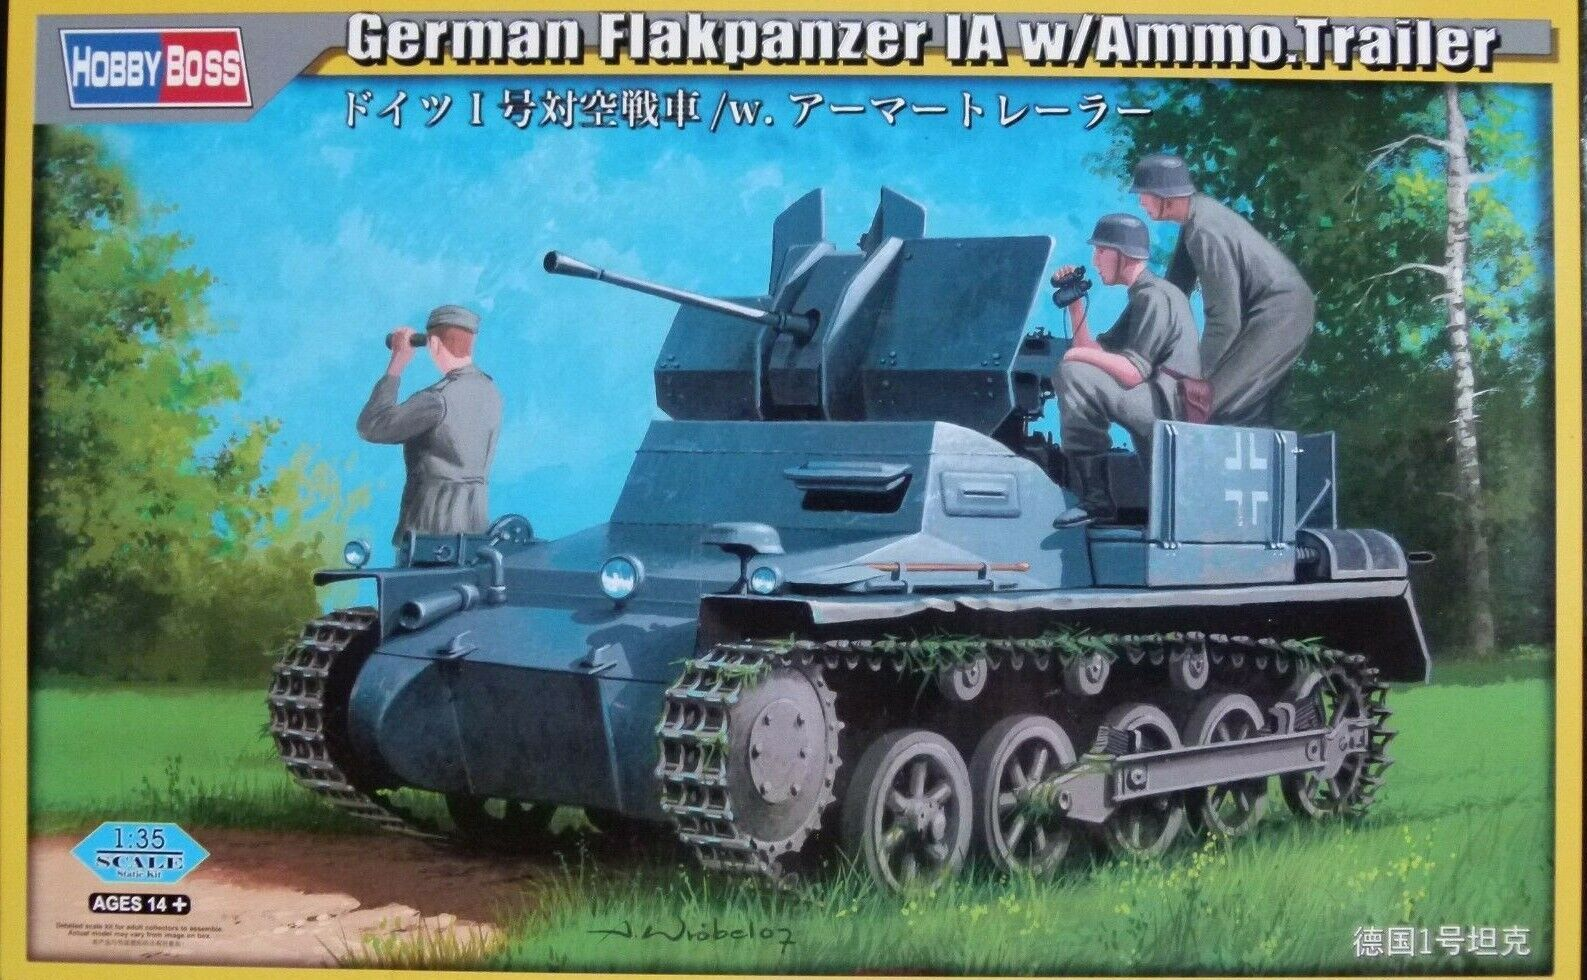 Hobbyboss 1 35 Flakpanzer IA SPG With Ammo Trailer German Tank Model Kit